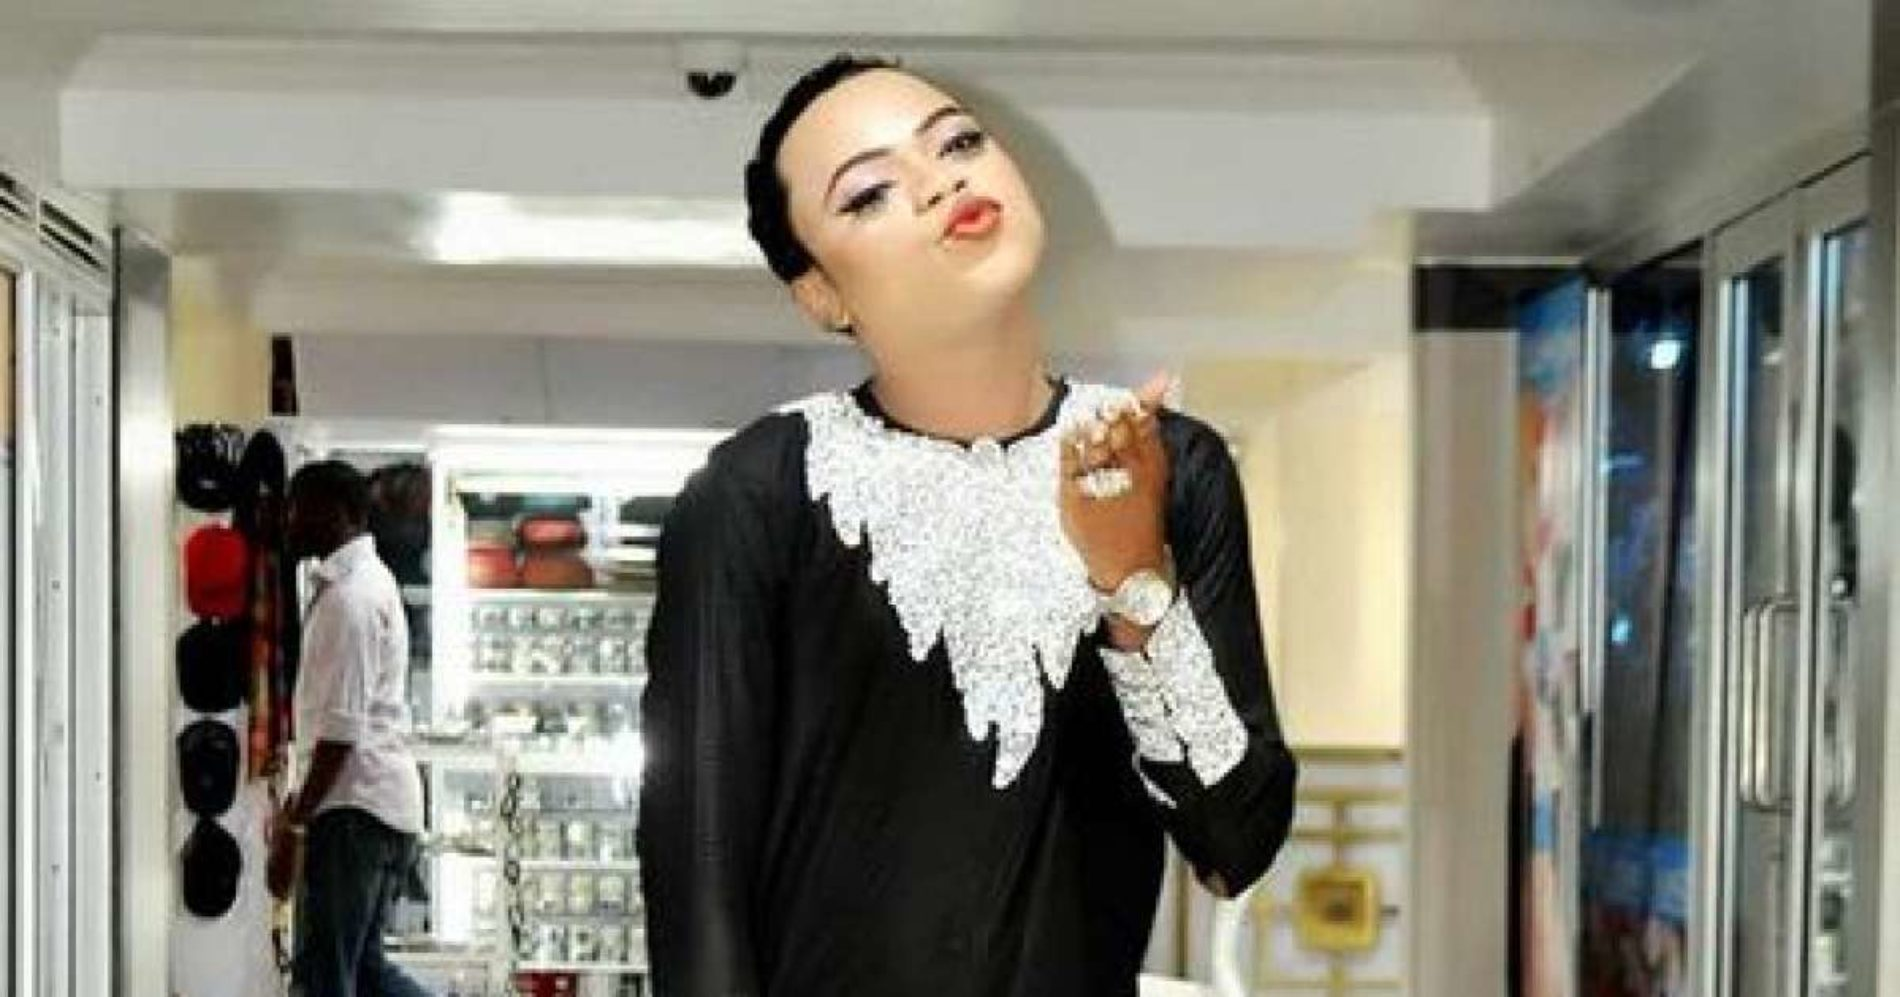 'Nigeria is a bloody joke, how is someone's sexuality your business' – #FreeBobrisky starts trending on social media